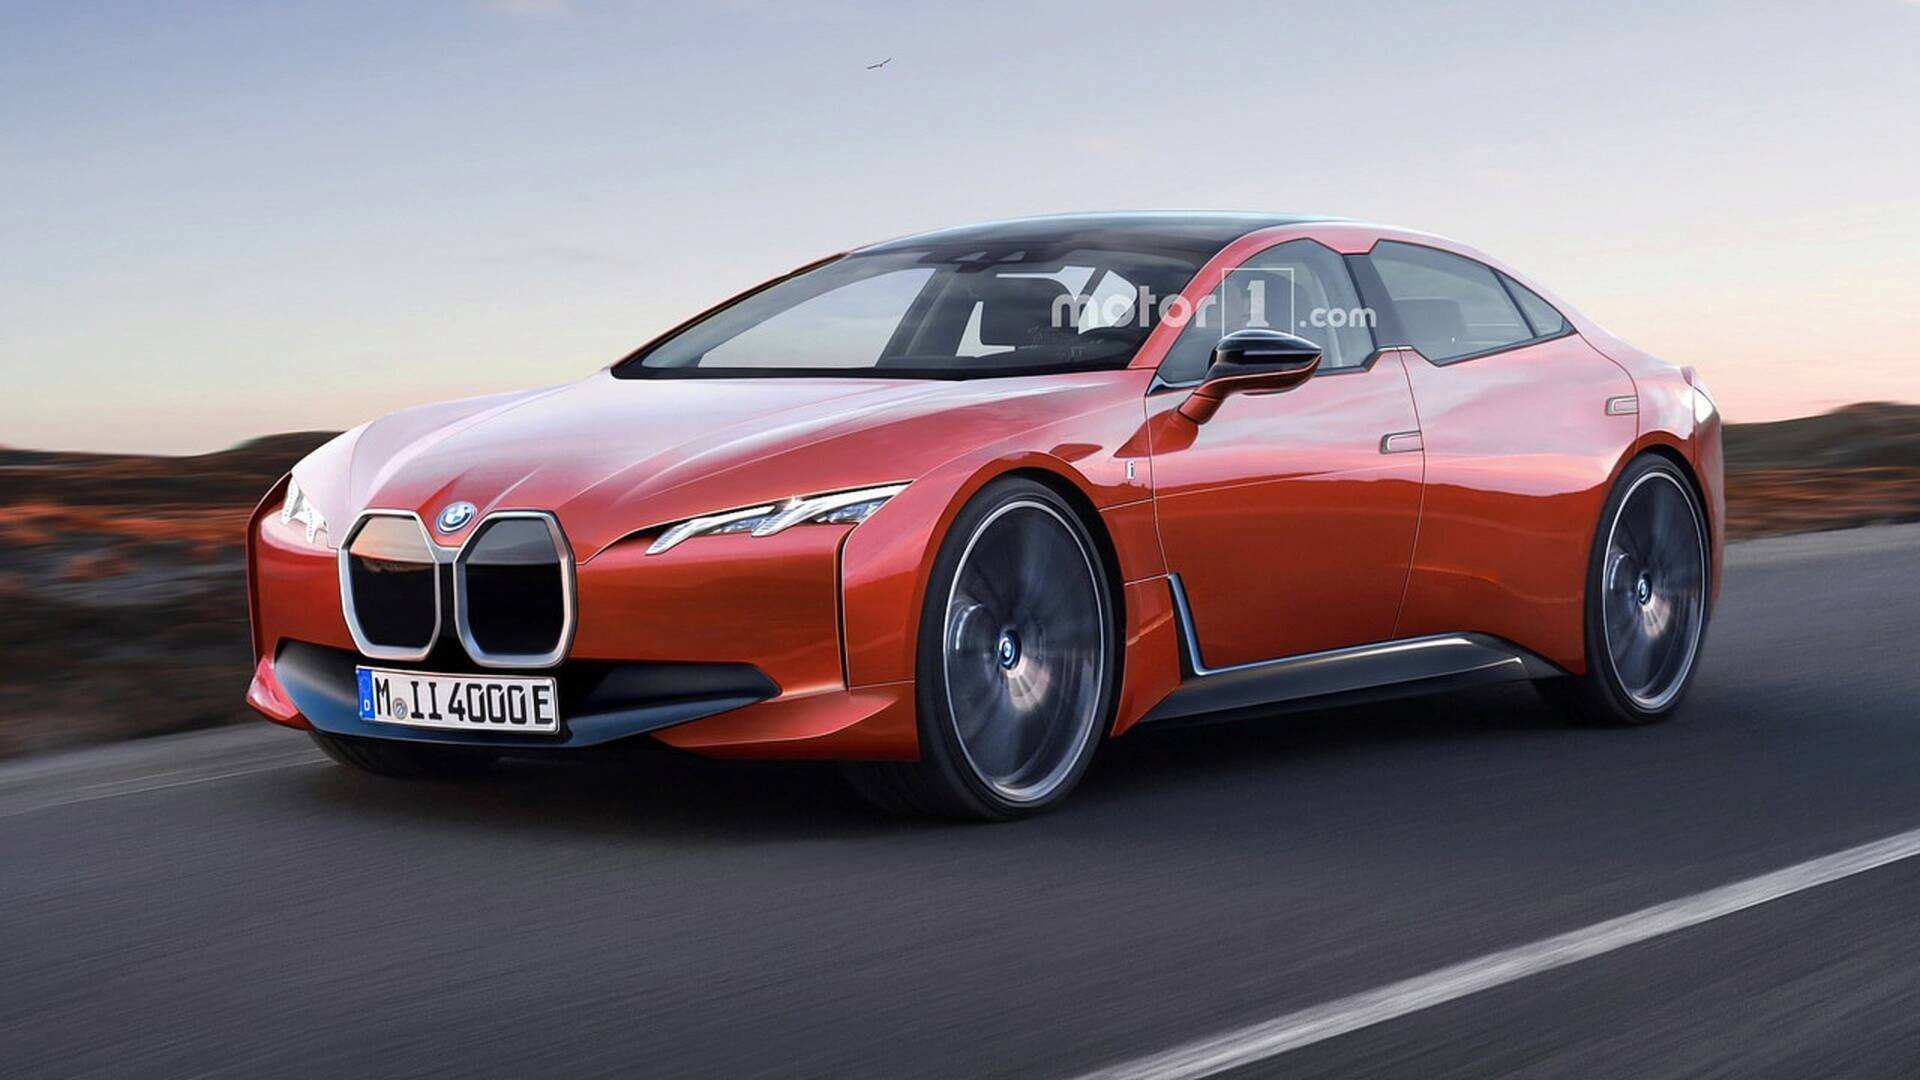 90 Great 2020 Bmw Models Ratings by 2020 Bmw Models